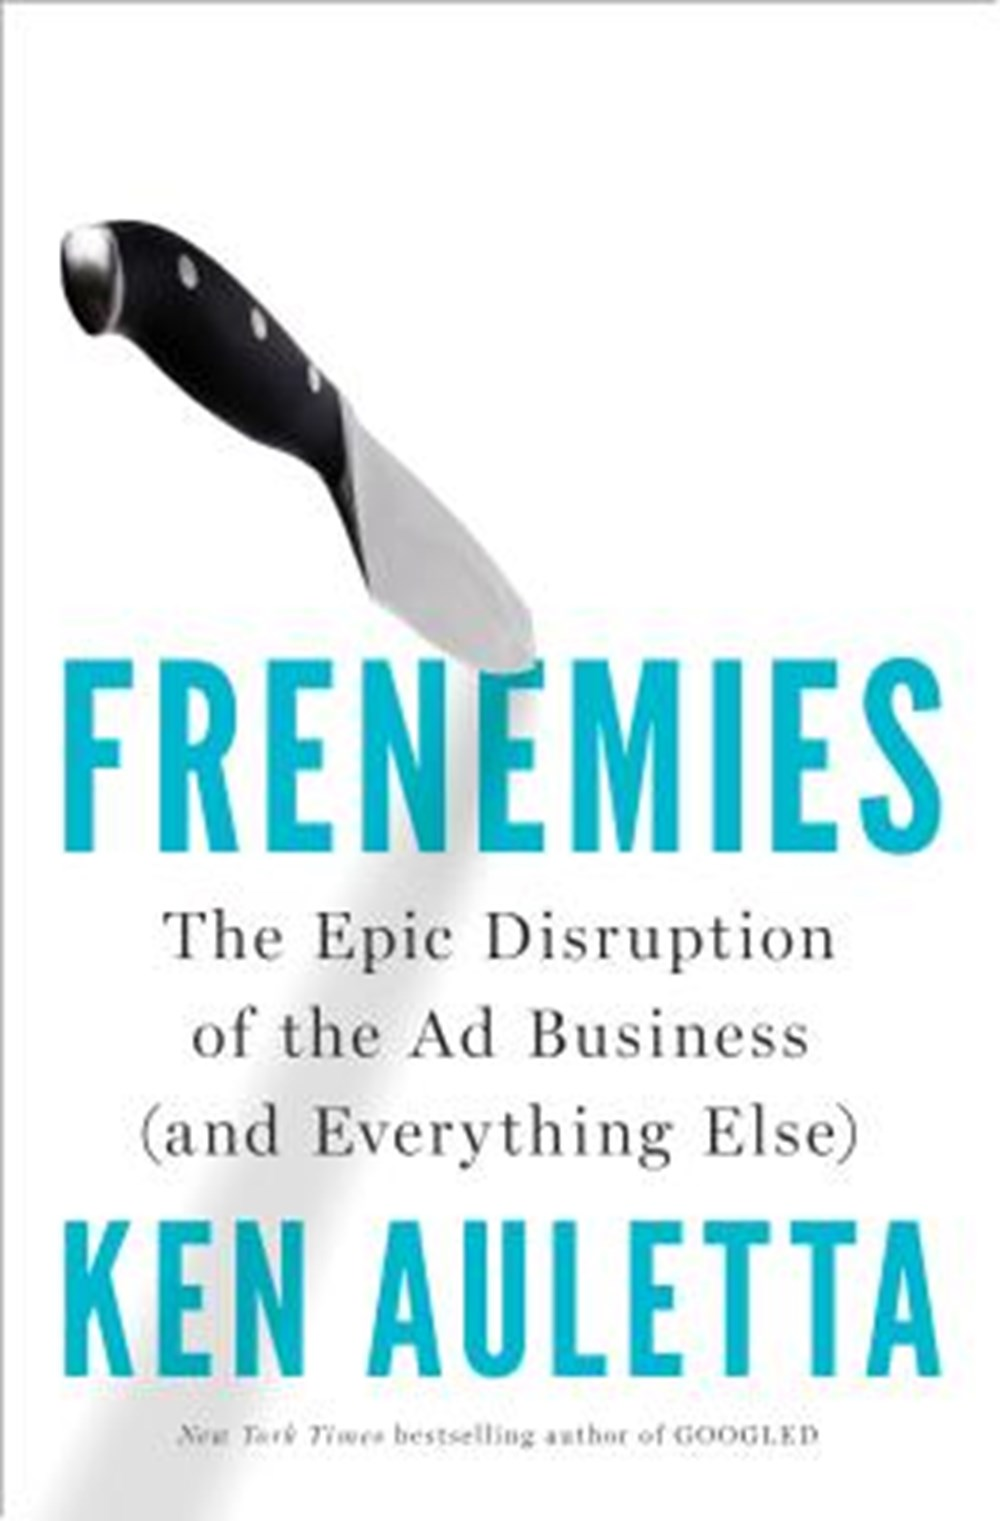 Frenemies The Epic Disruption of the Ad Business (and Everything Else)